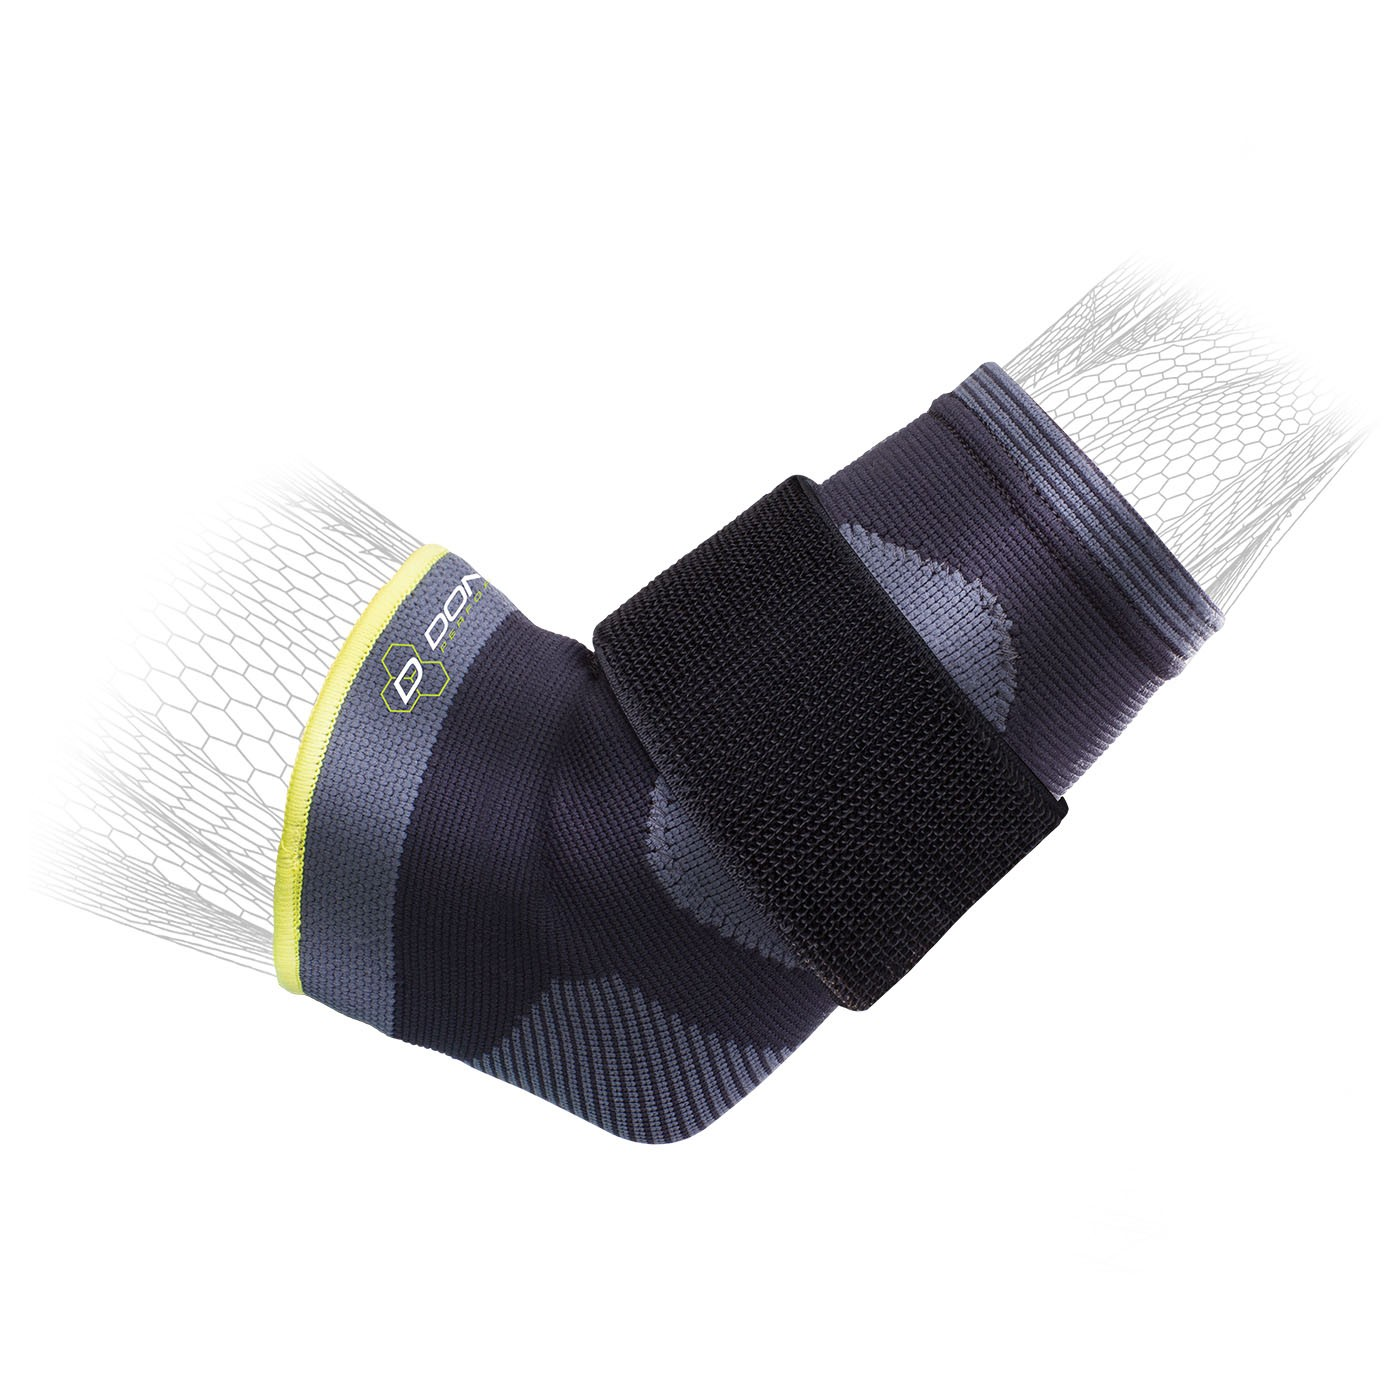 DonJoy Performance Deluxe Knit Elbow - 1